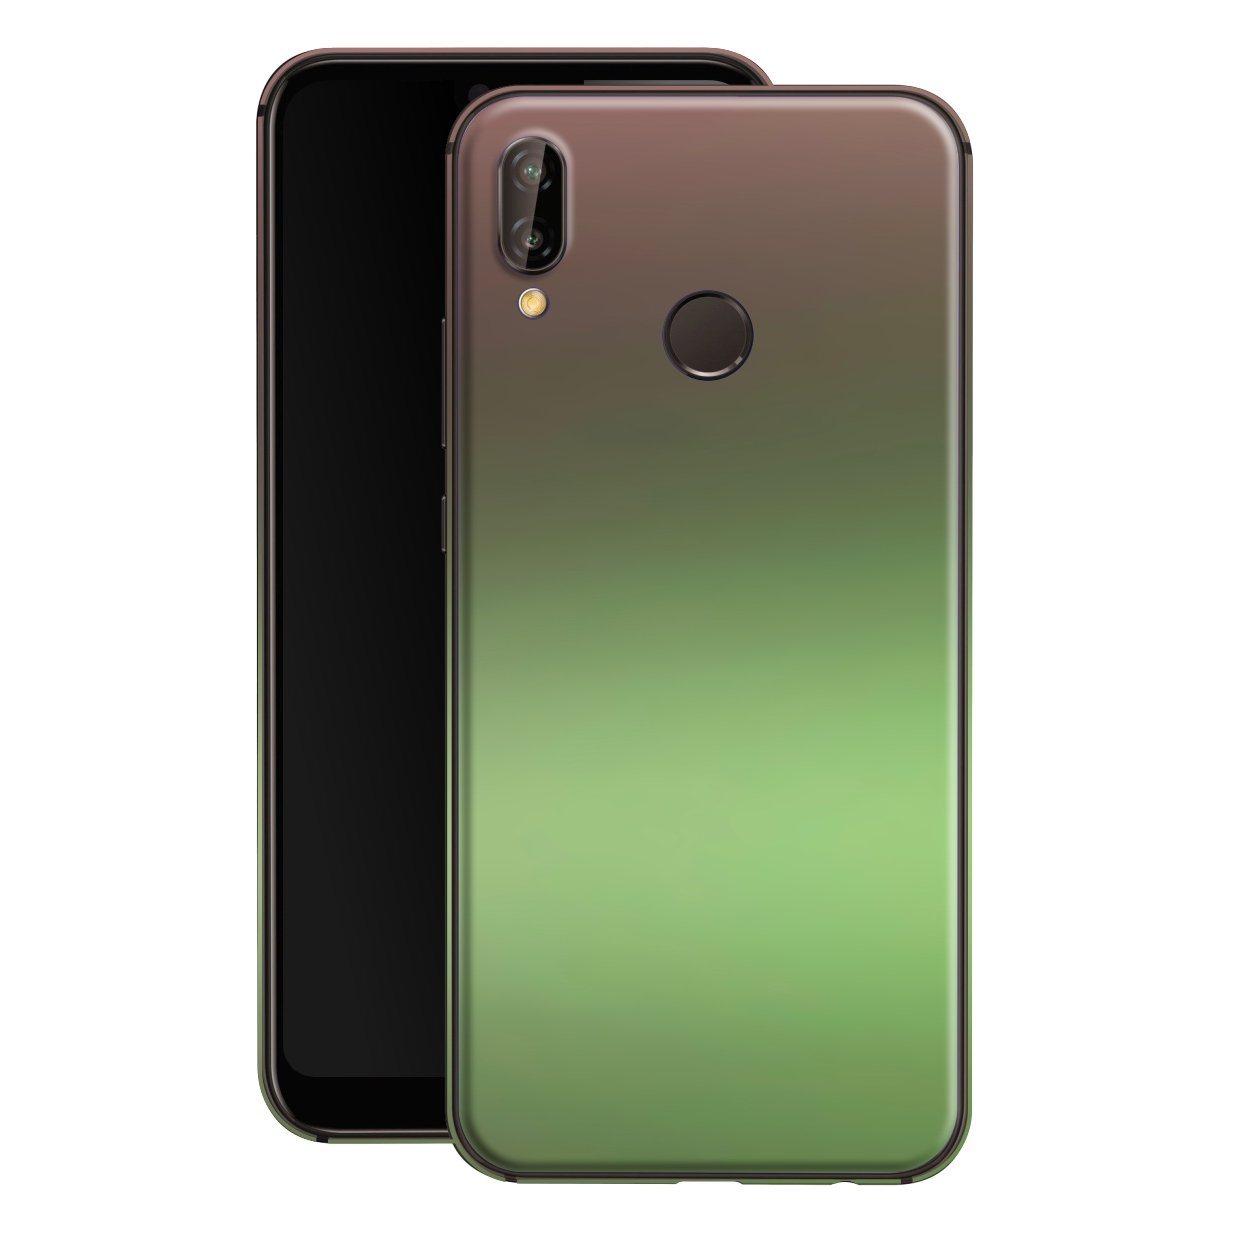 Huawei P20 LITE Chameleon Avocado Colour-Changing Skin, Decal, Wrap, Protector, Cover by EasySkinz | EasySkinz.com